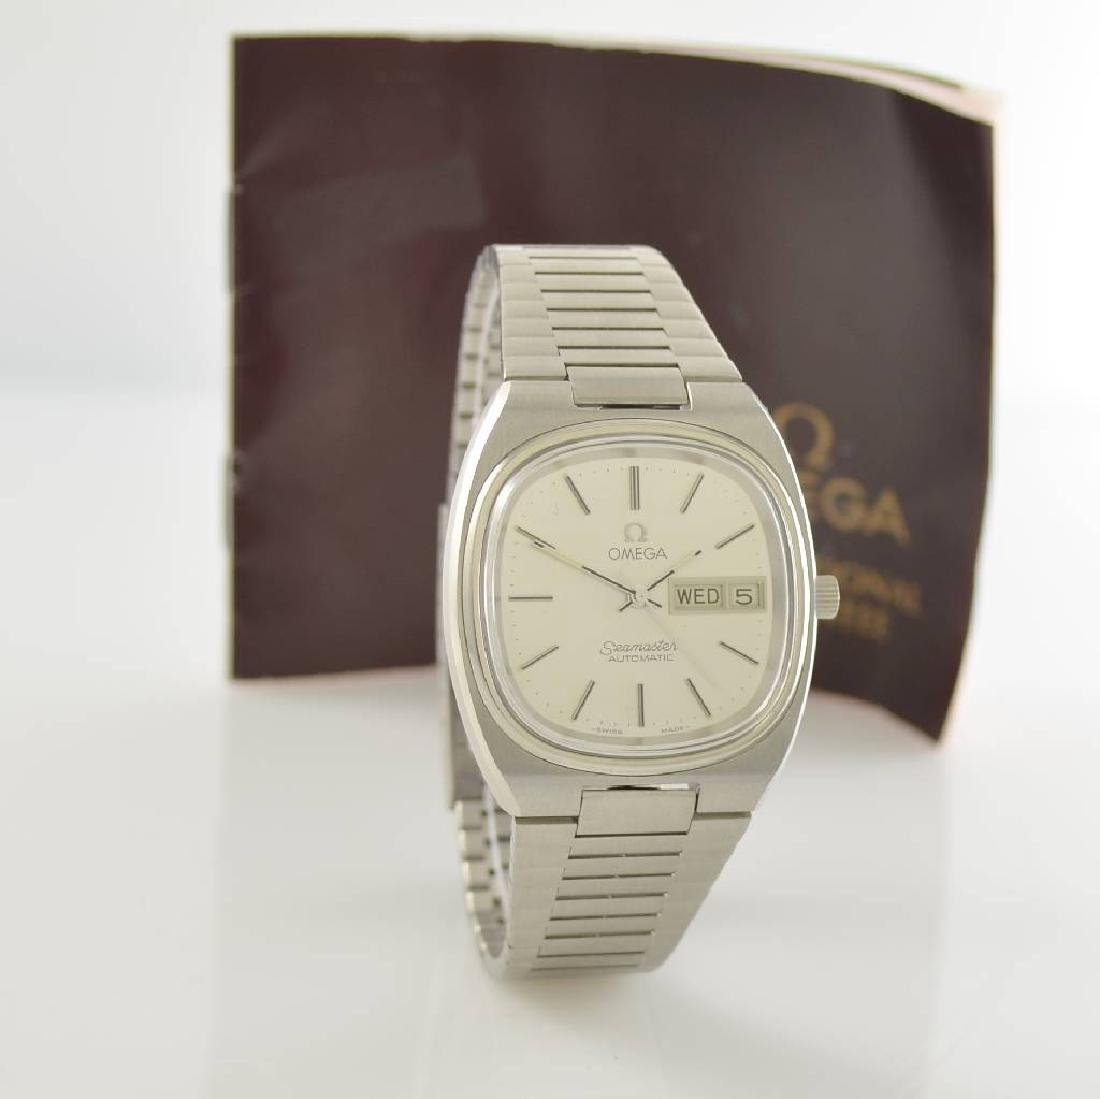 OMEGA Seamaster stainless steel gents wristwatch - 6